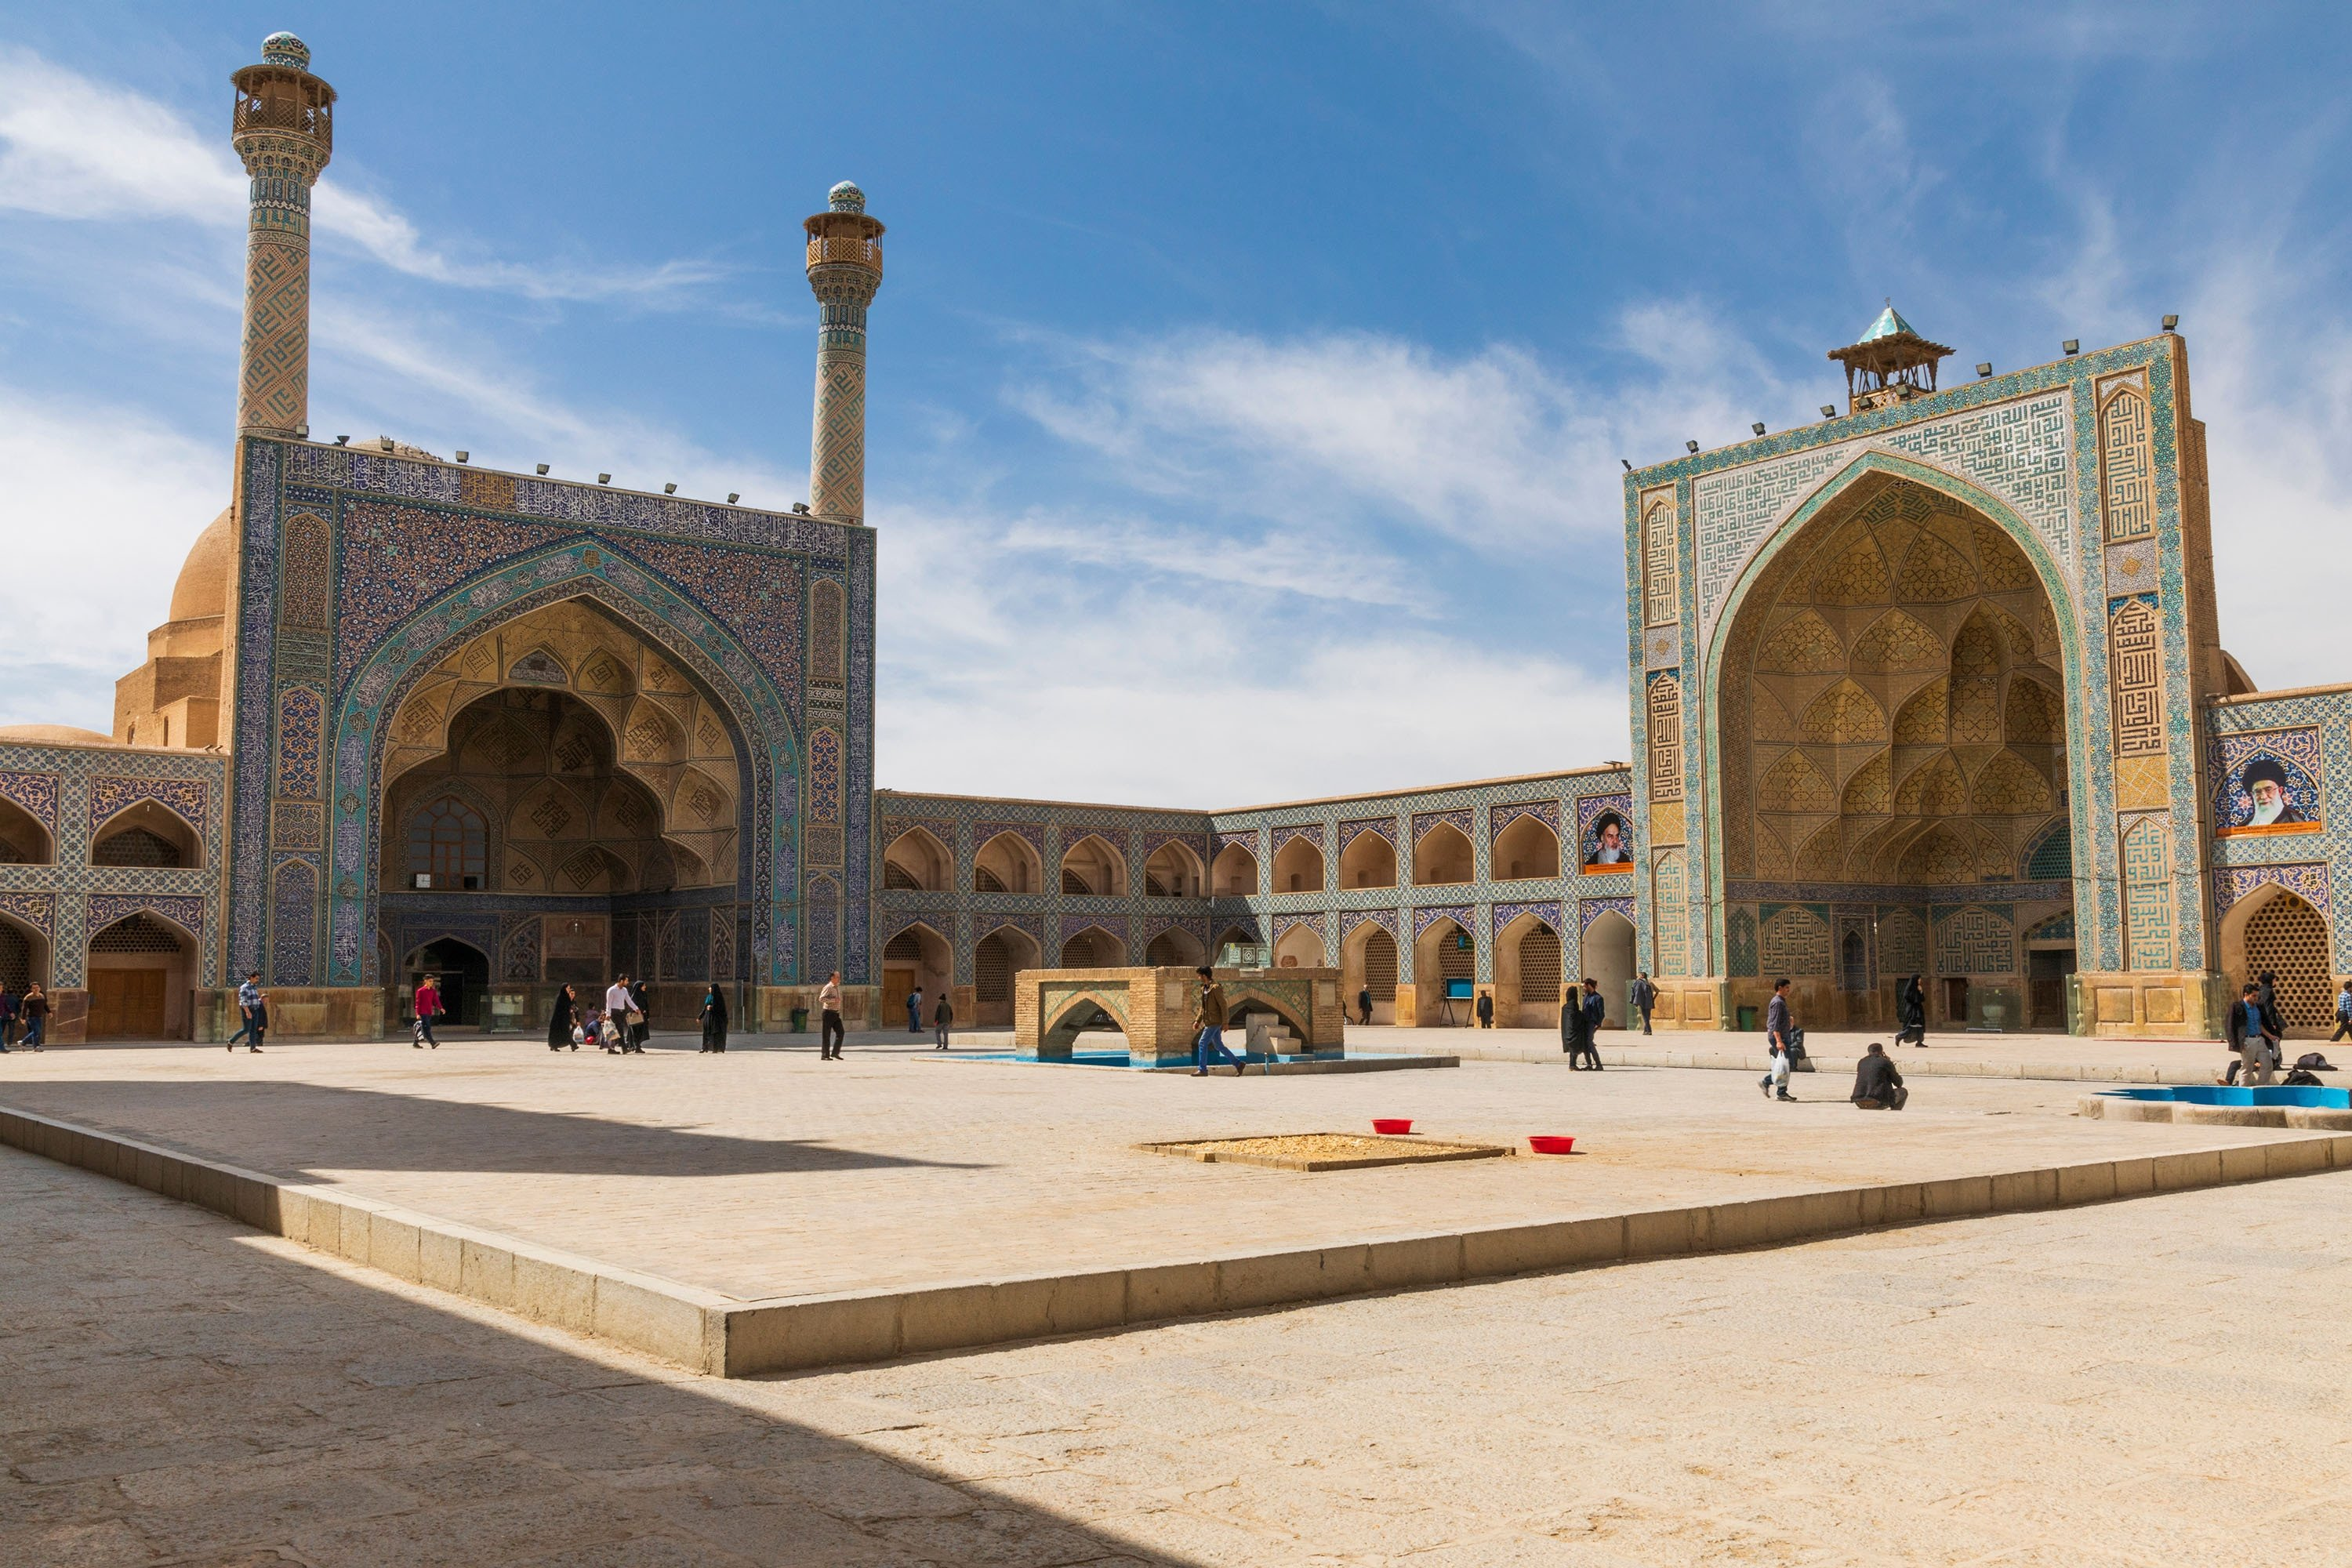 Sun shines upon the courtyard of the Jameh Mosque, a grand, congregational mosque whose south dome was built by Nizam al-Mulk, in Isfahan, Iran. (Shutterstock Photo)